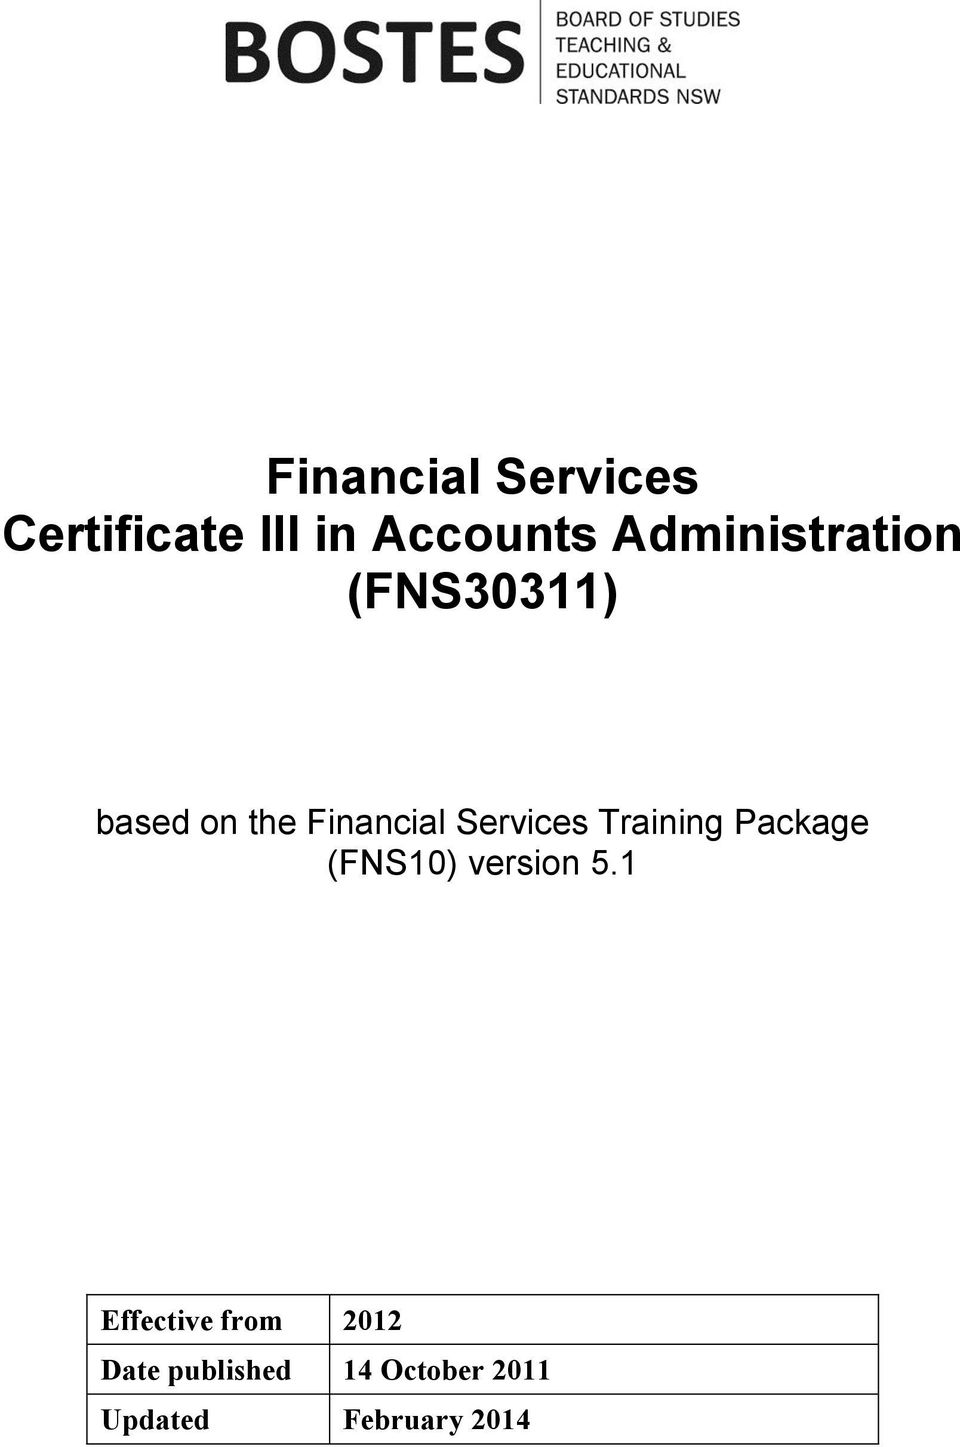 Training Package (FNS10) version 5.